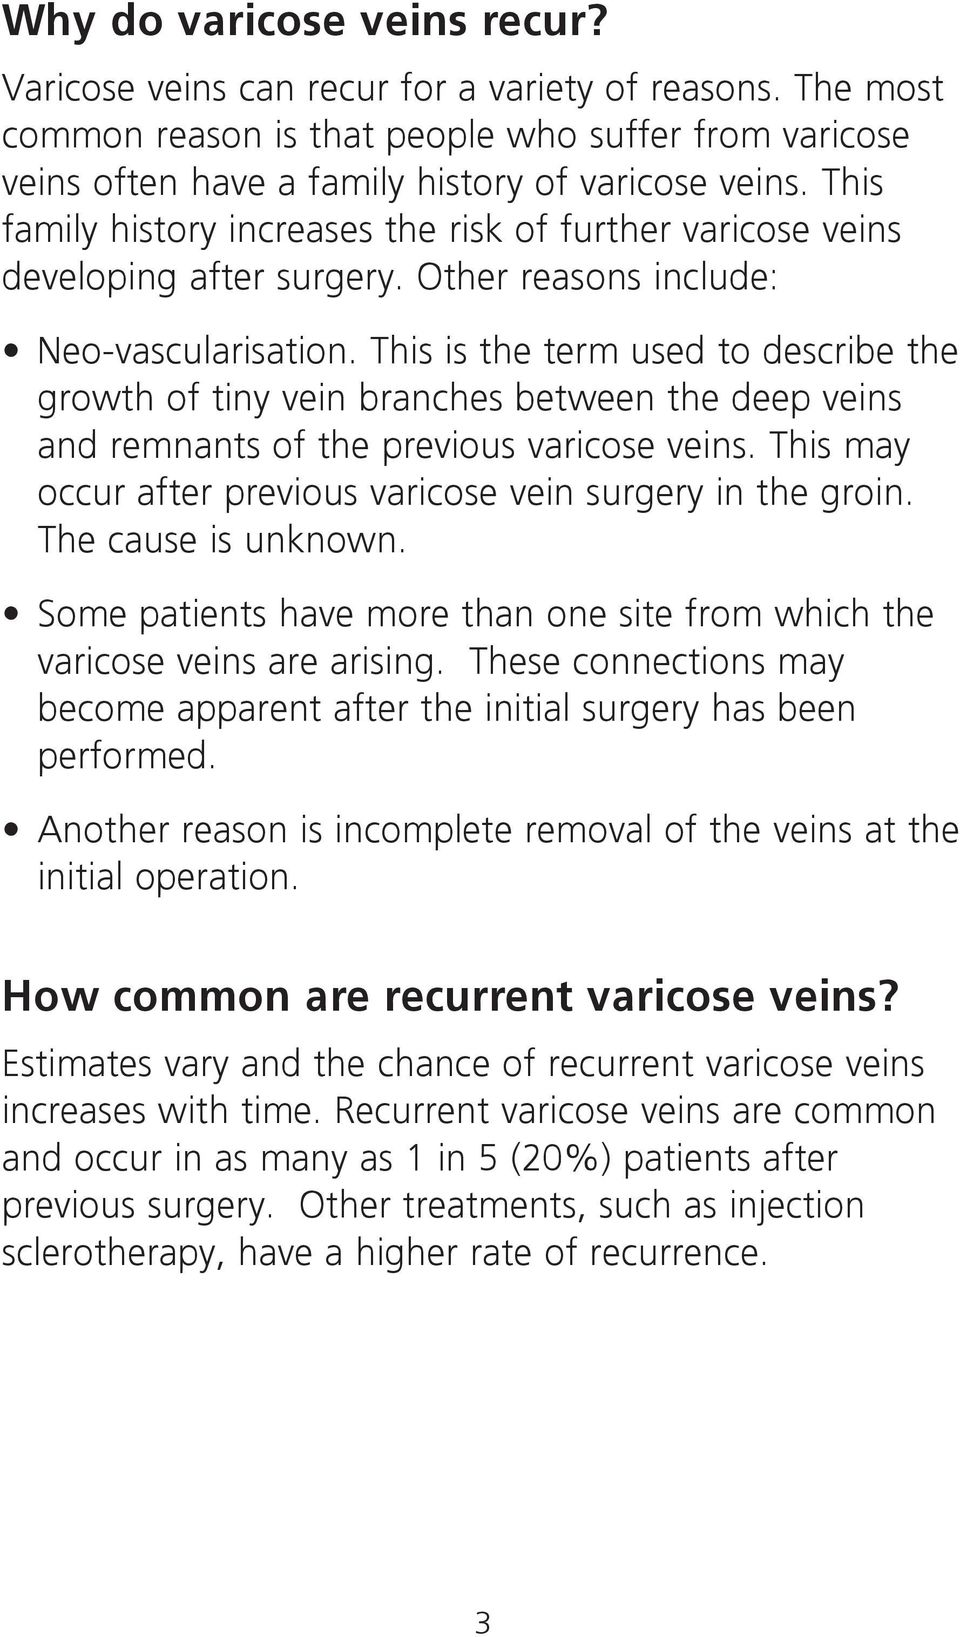 This is the term used to describe the growth of tiny vein branches between the deep veins and remnants of the previous varicose veins. This may occur after previous varicose vein surgery in the groin.